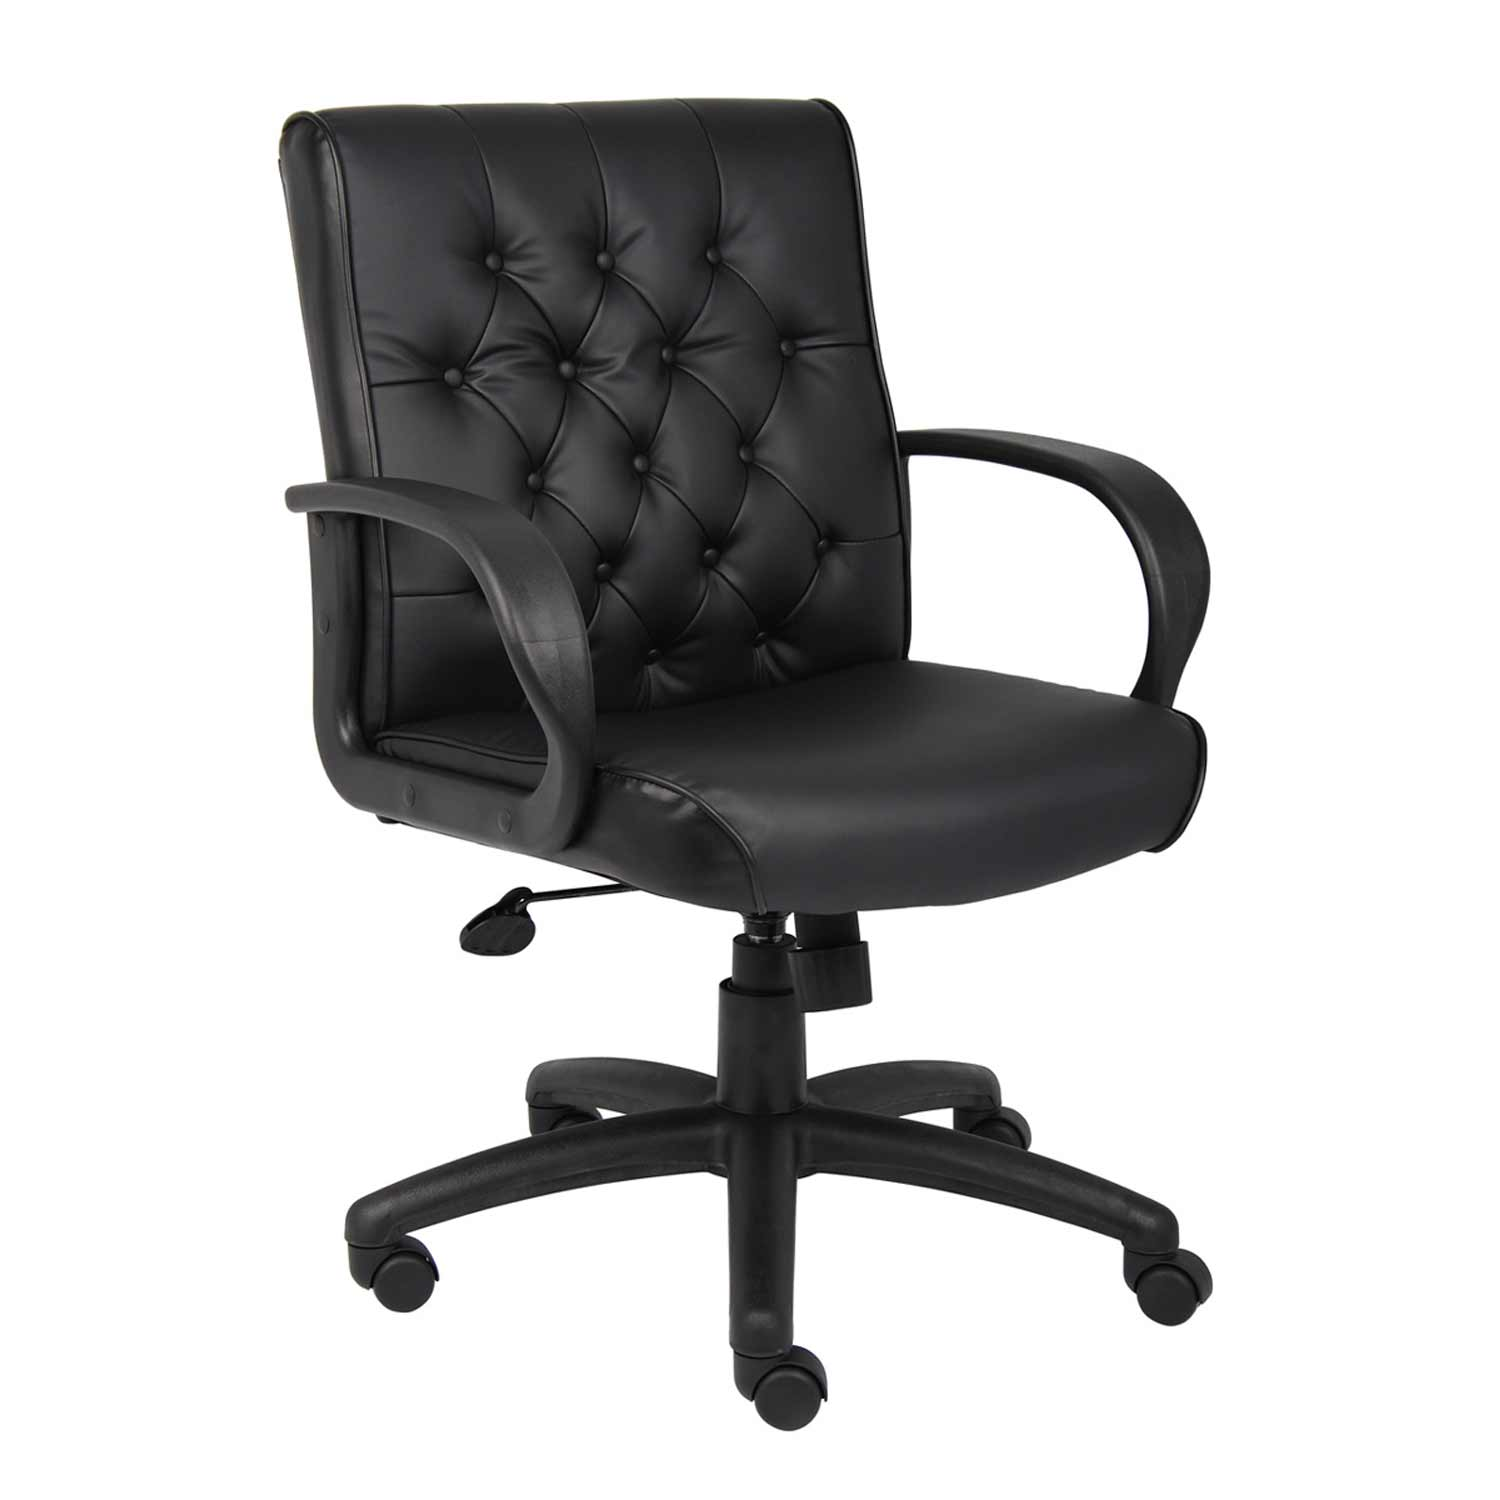 office recliner chair kids study chairs